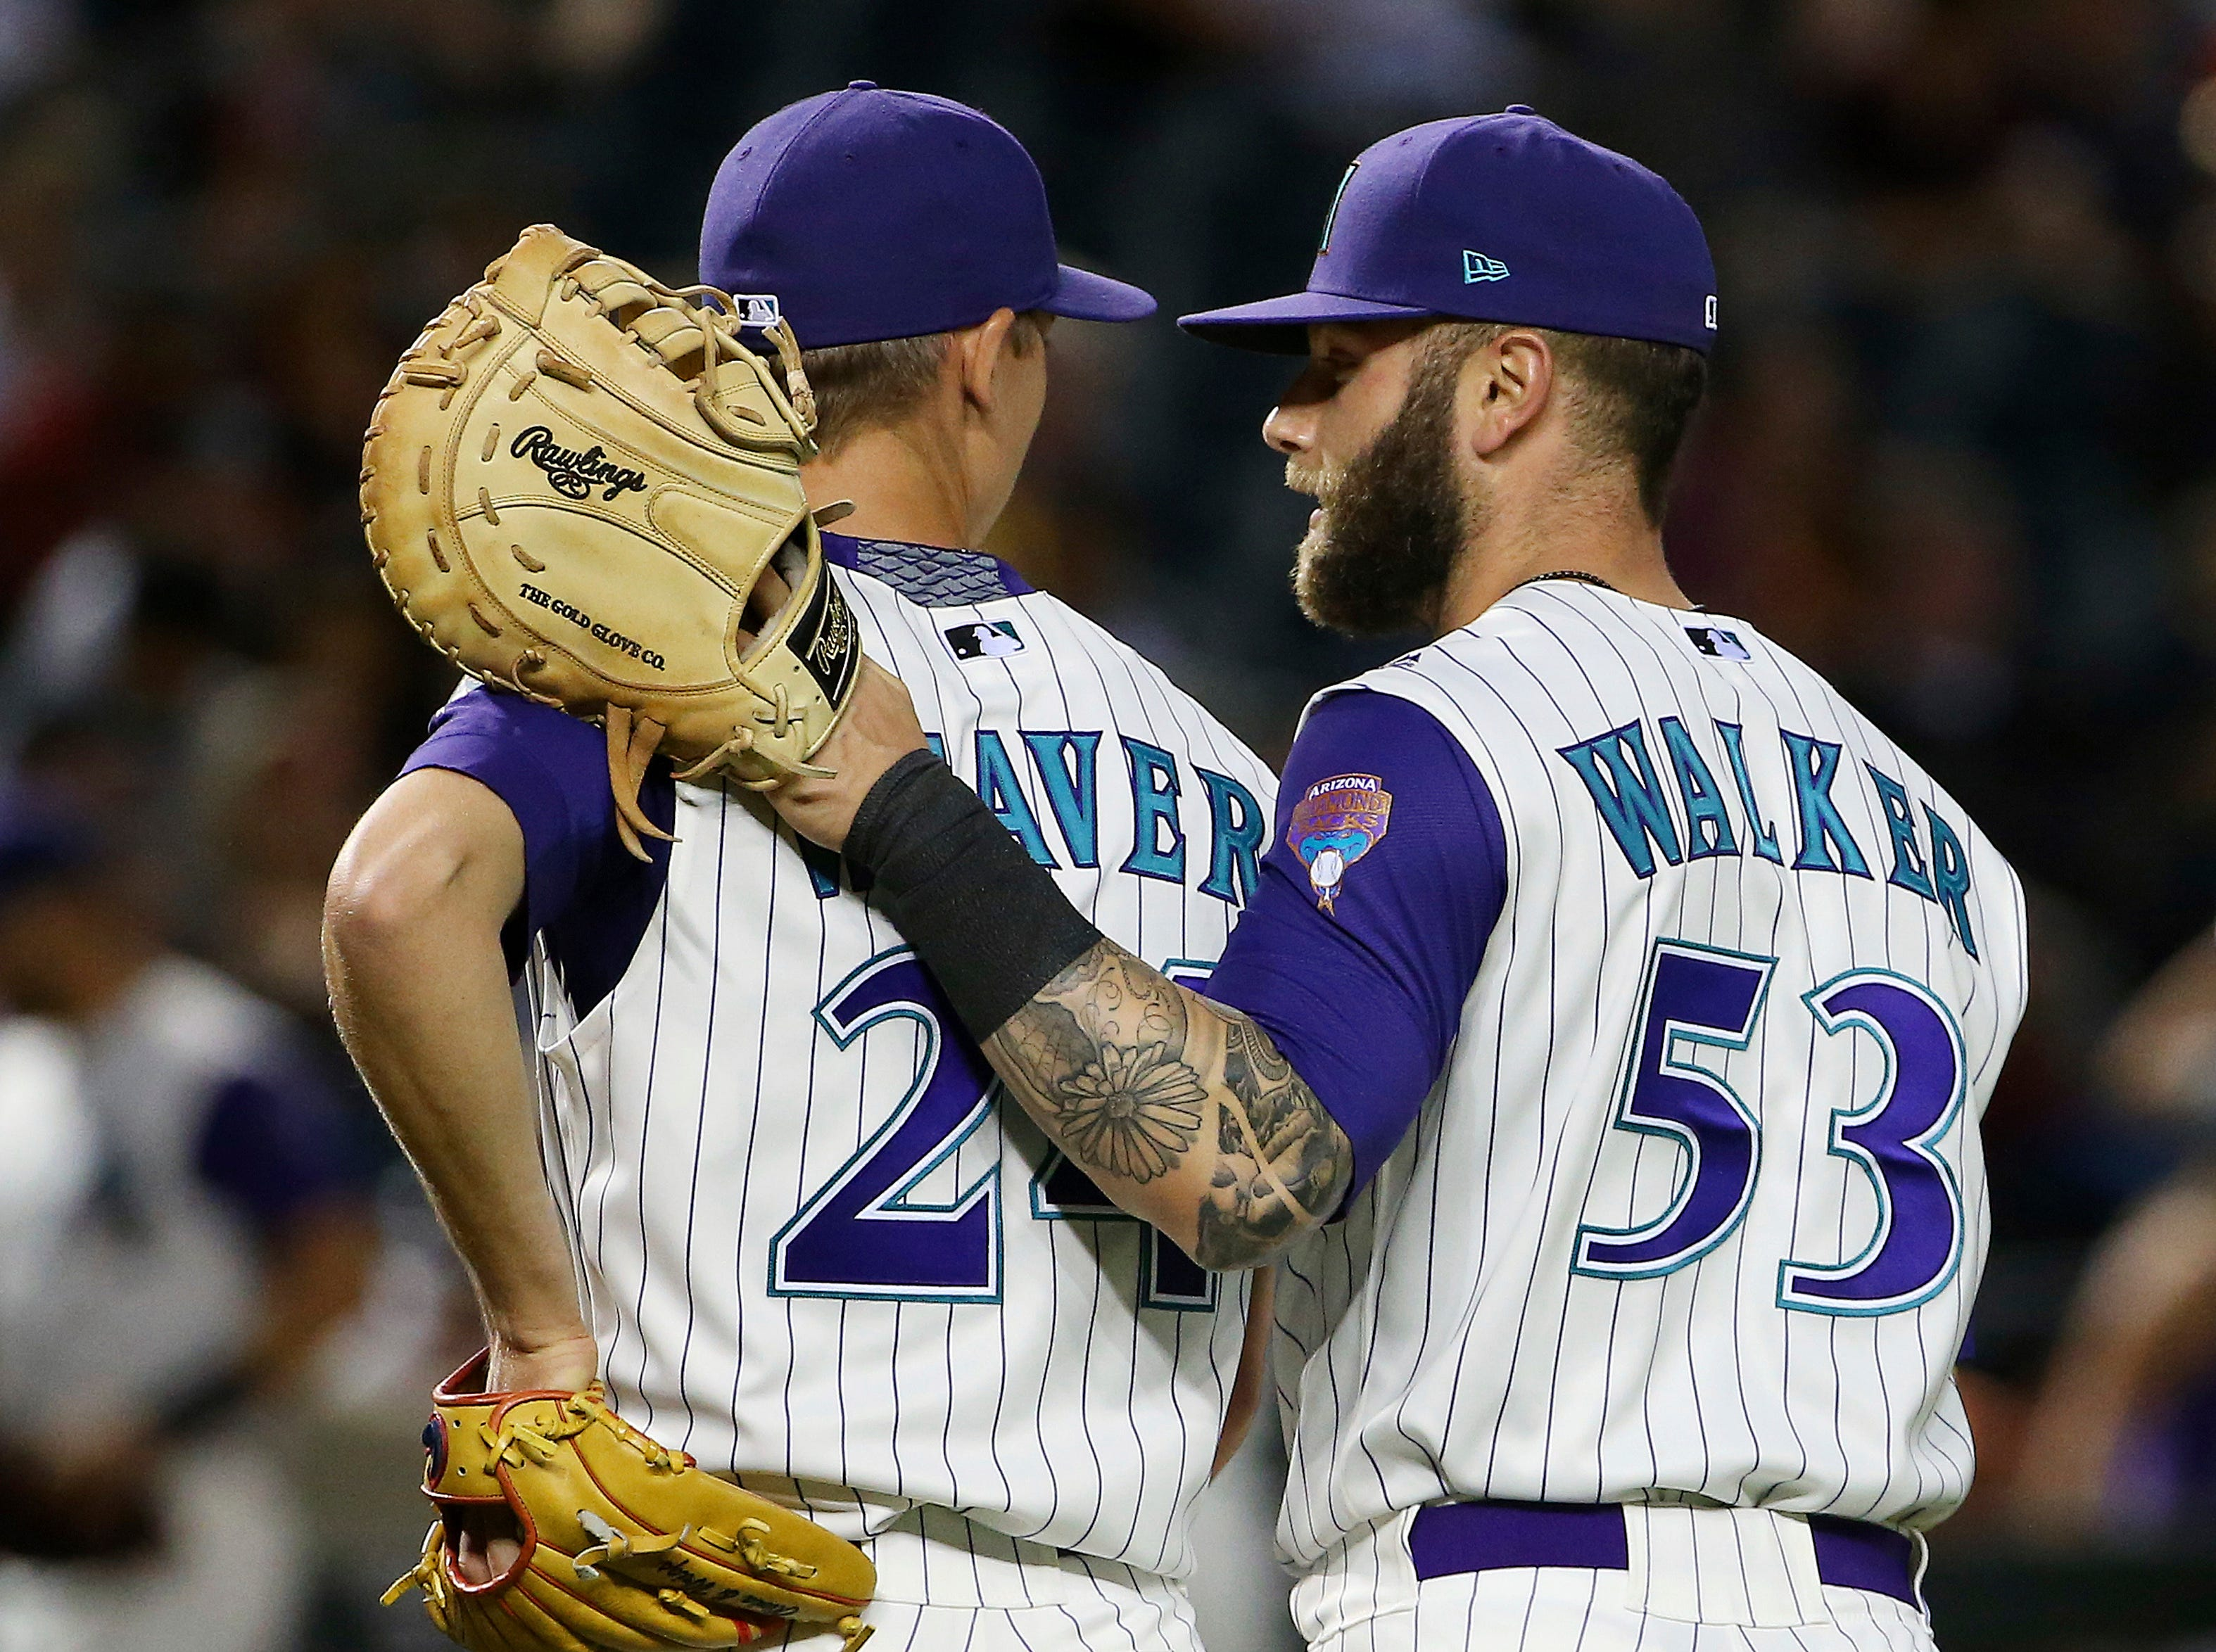 Arizona Diamondbacks first baseman Christian Walker (53) talks with pitcher Luke Weaver, left, as they both walk off the field after the third out during the third inning of the team's baseball game against the Atlanta Braves Thursday, May 9, 2019, in Phoenix. (AP Photo/Ross D. Franklin)